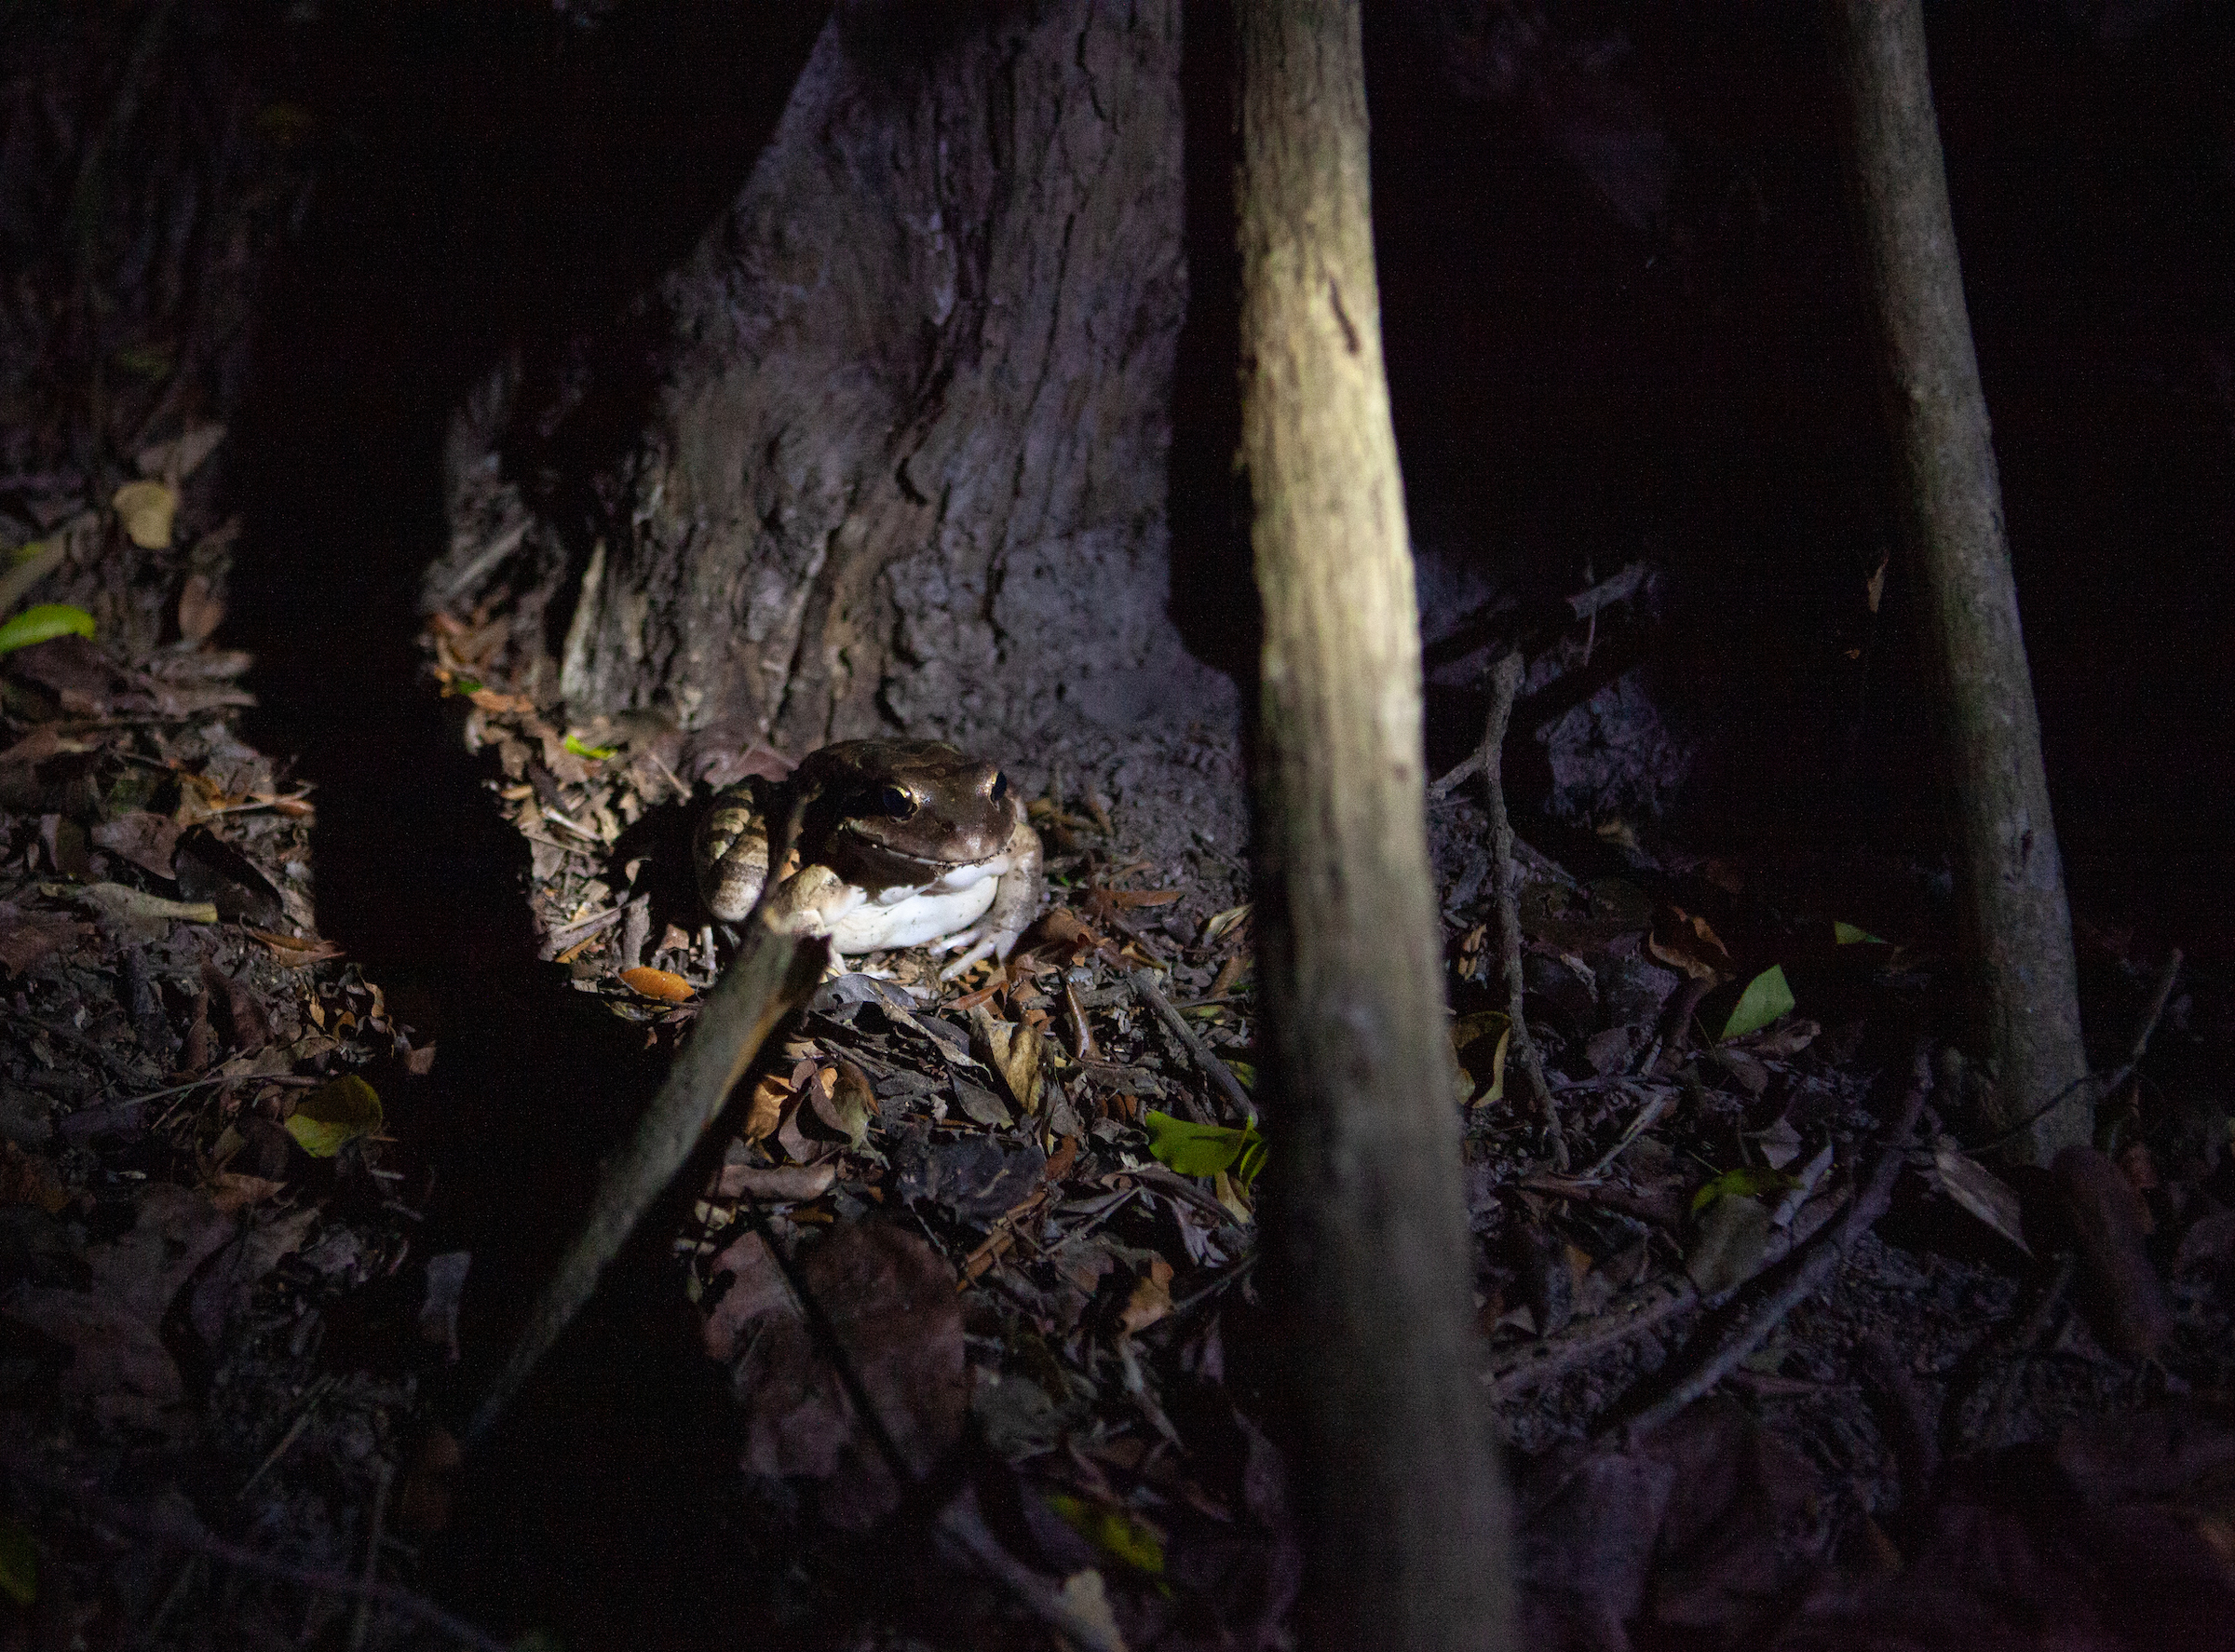 A headlamp beam illuminates a mountain chicken, one of 27 recently released into semi-wild enclosures on Montserrat. Photograph by Geoffrey Giller